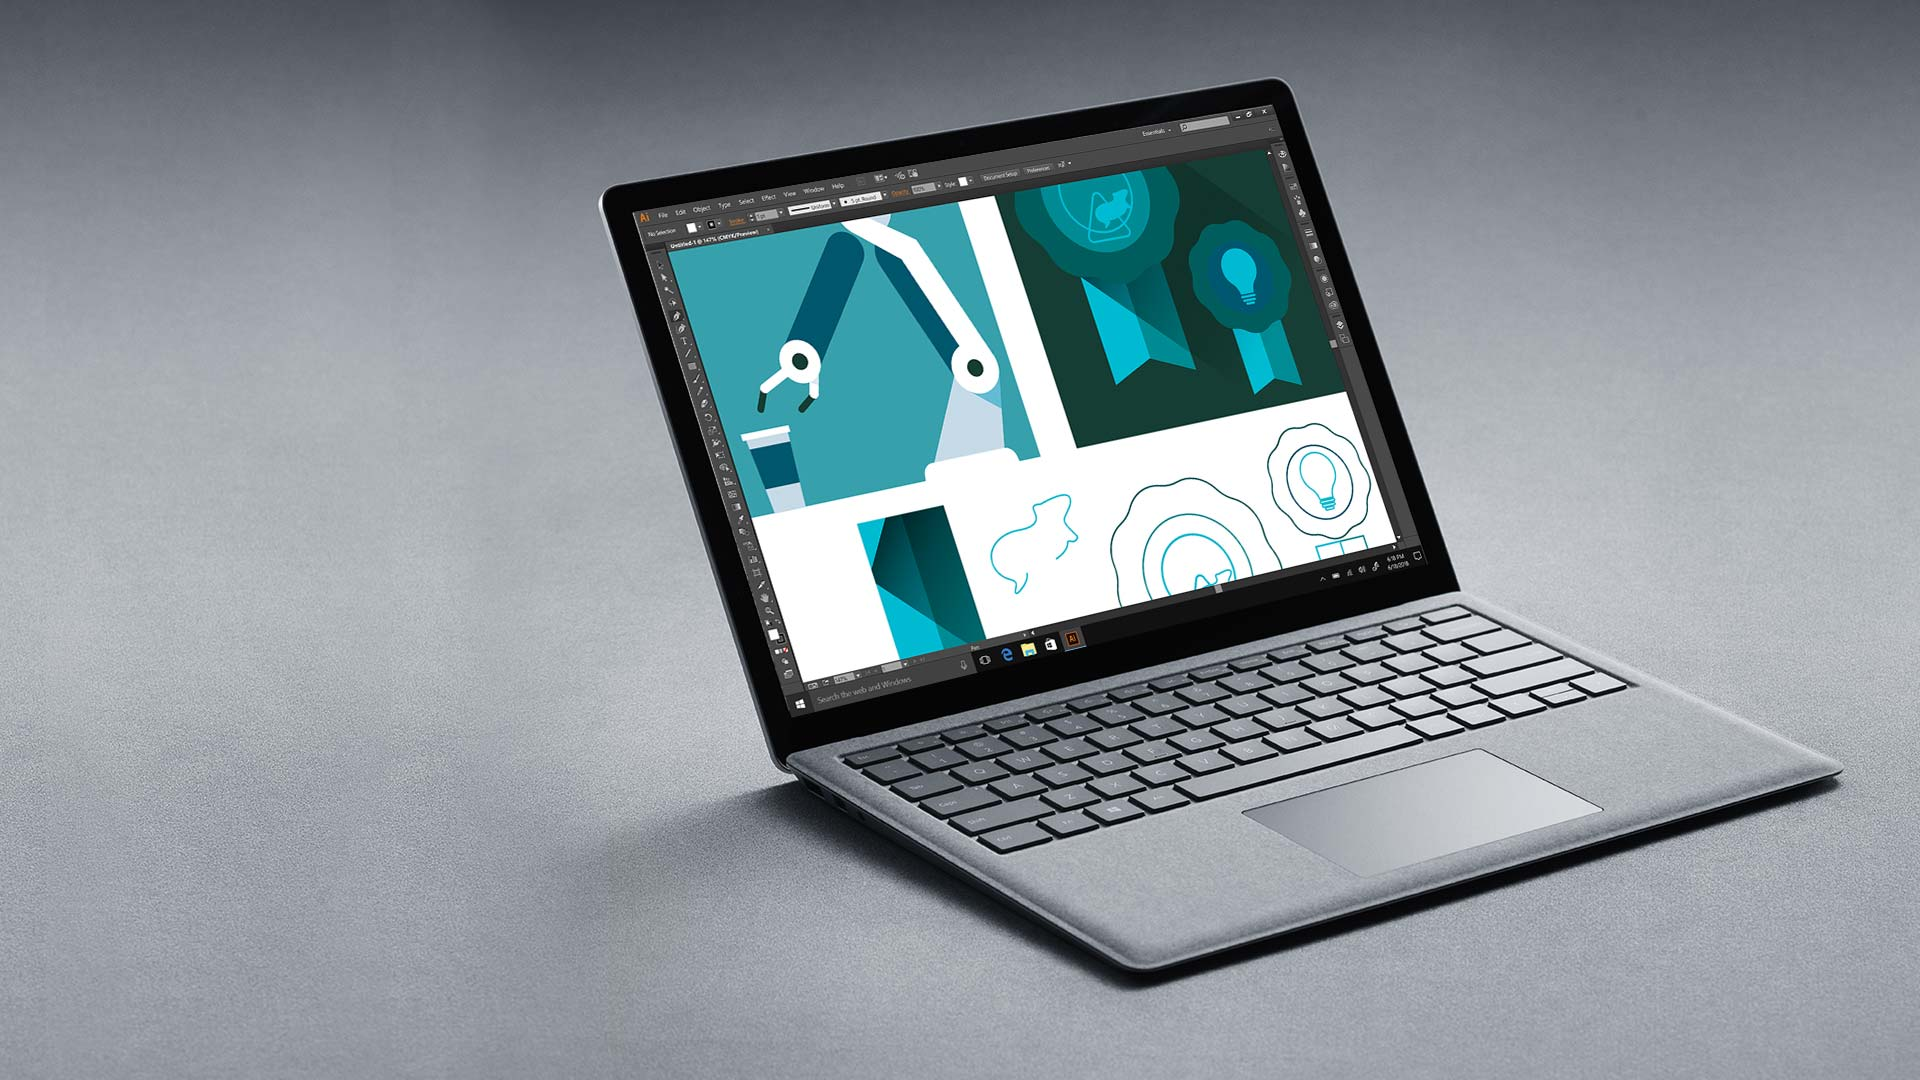 Platinafärgad Surface Laptop med Adobe Illustrator-skärm.